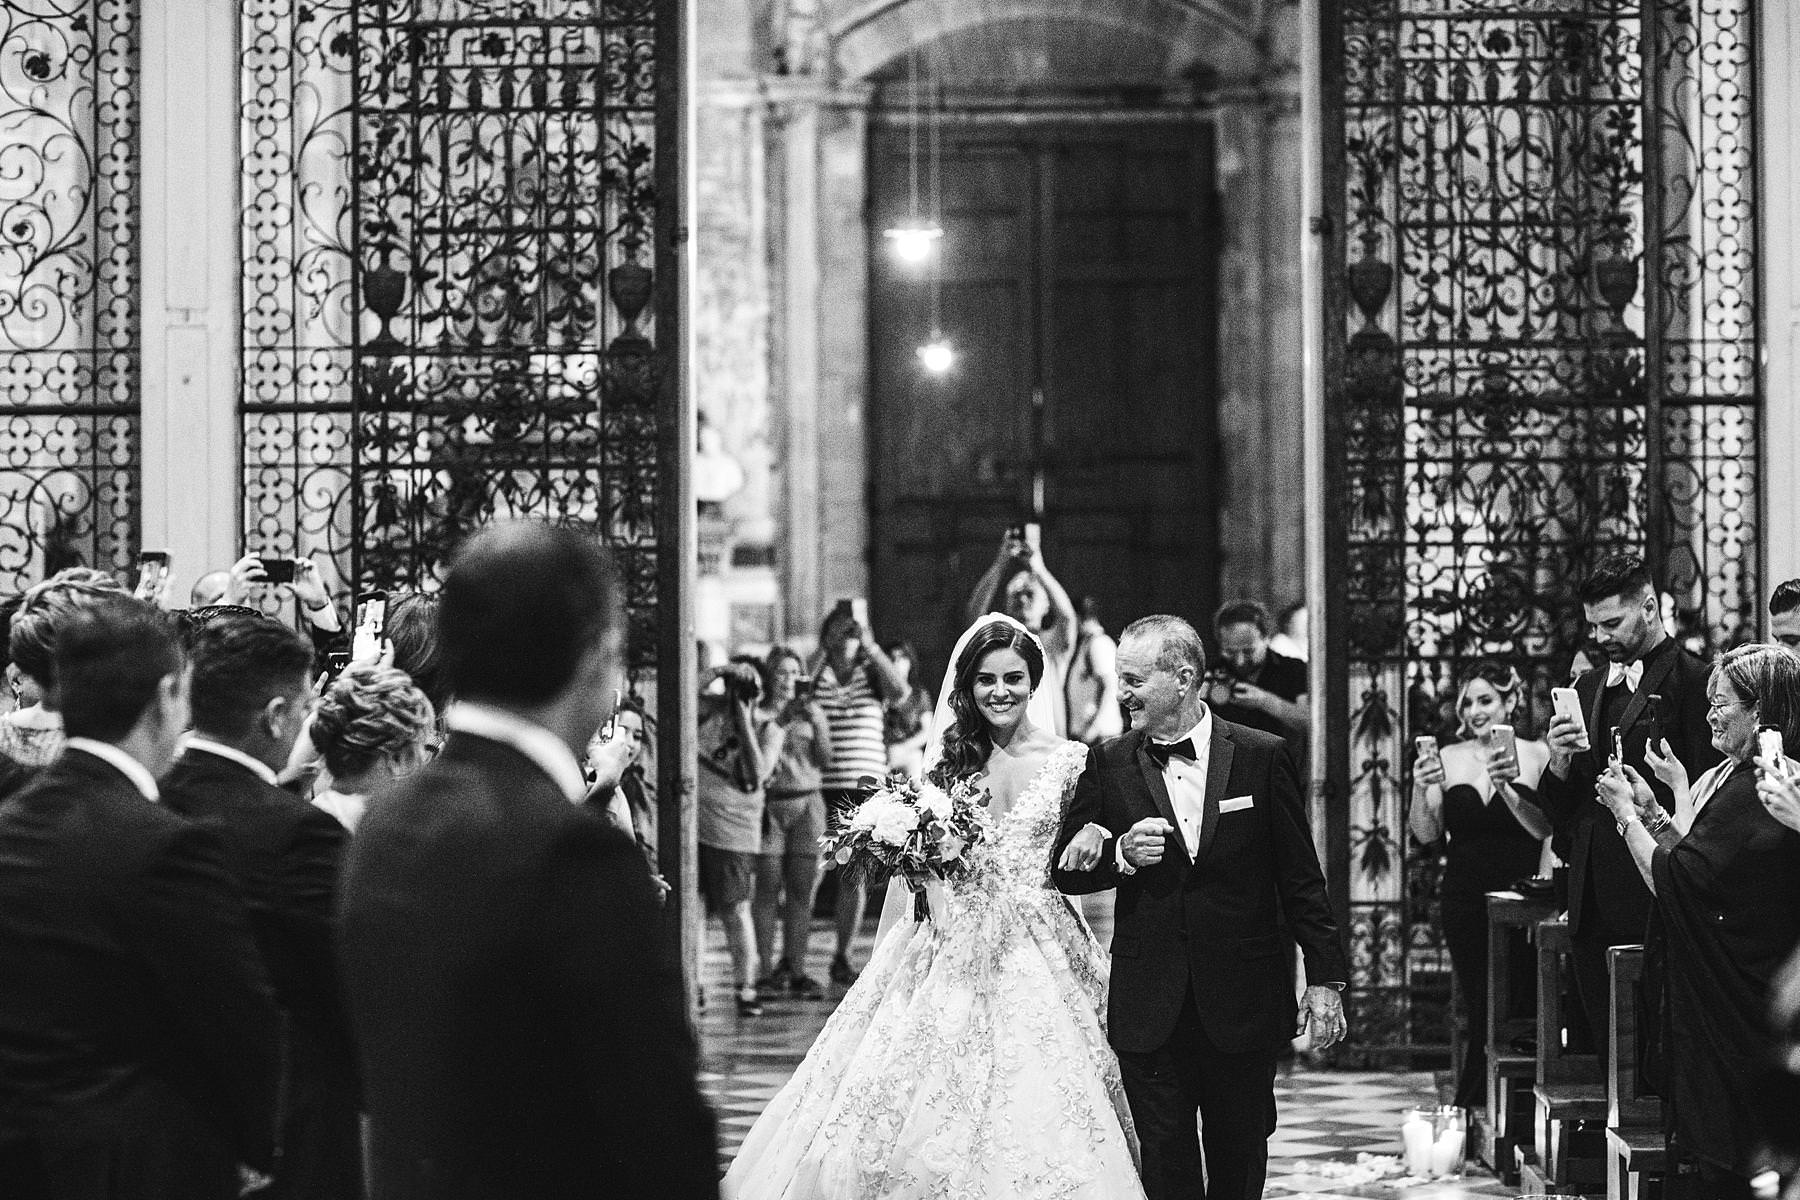 Beautiful bride Ilyssa in her Ysa Makino wedding gown walks down the aisle of Arezzo Cathedral with Father see for the first time the groom Alex. Elegant destination castle wedding in Tuscany with catholic ceremony in Arezzo